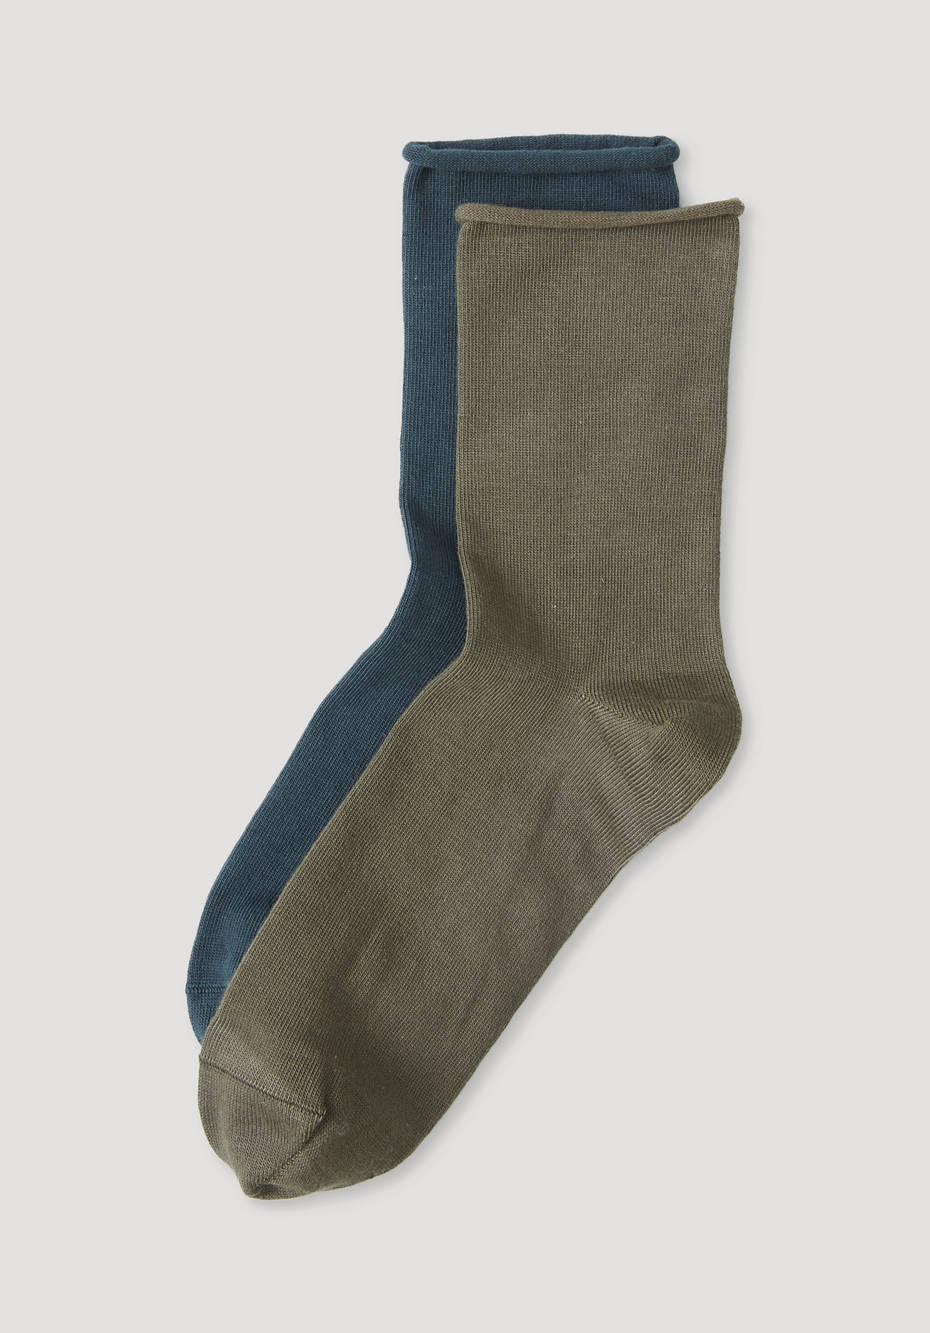 Set of 2 socks made from organic cotton